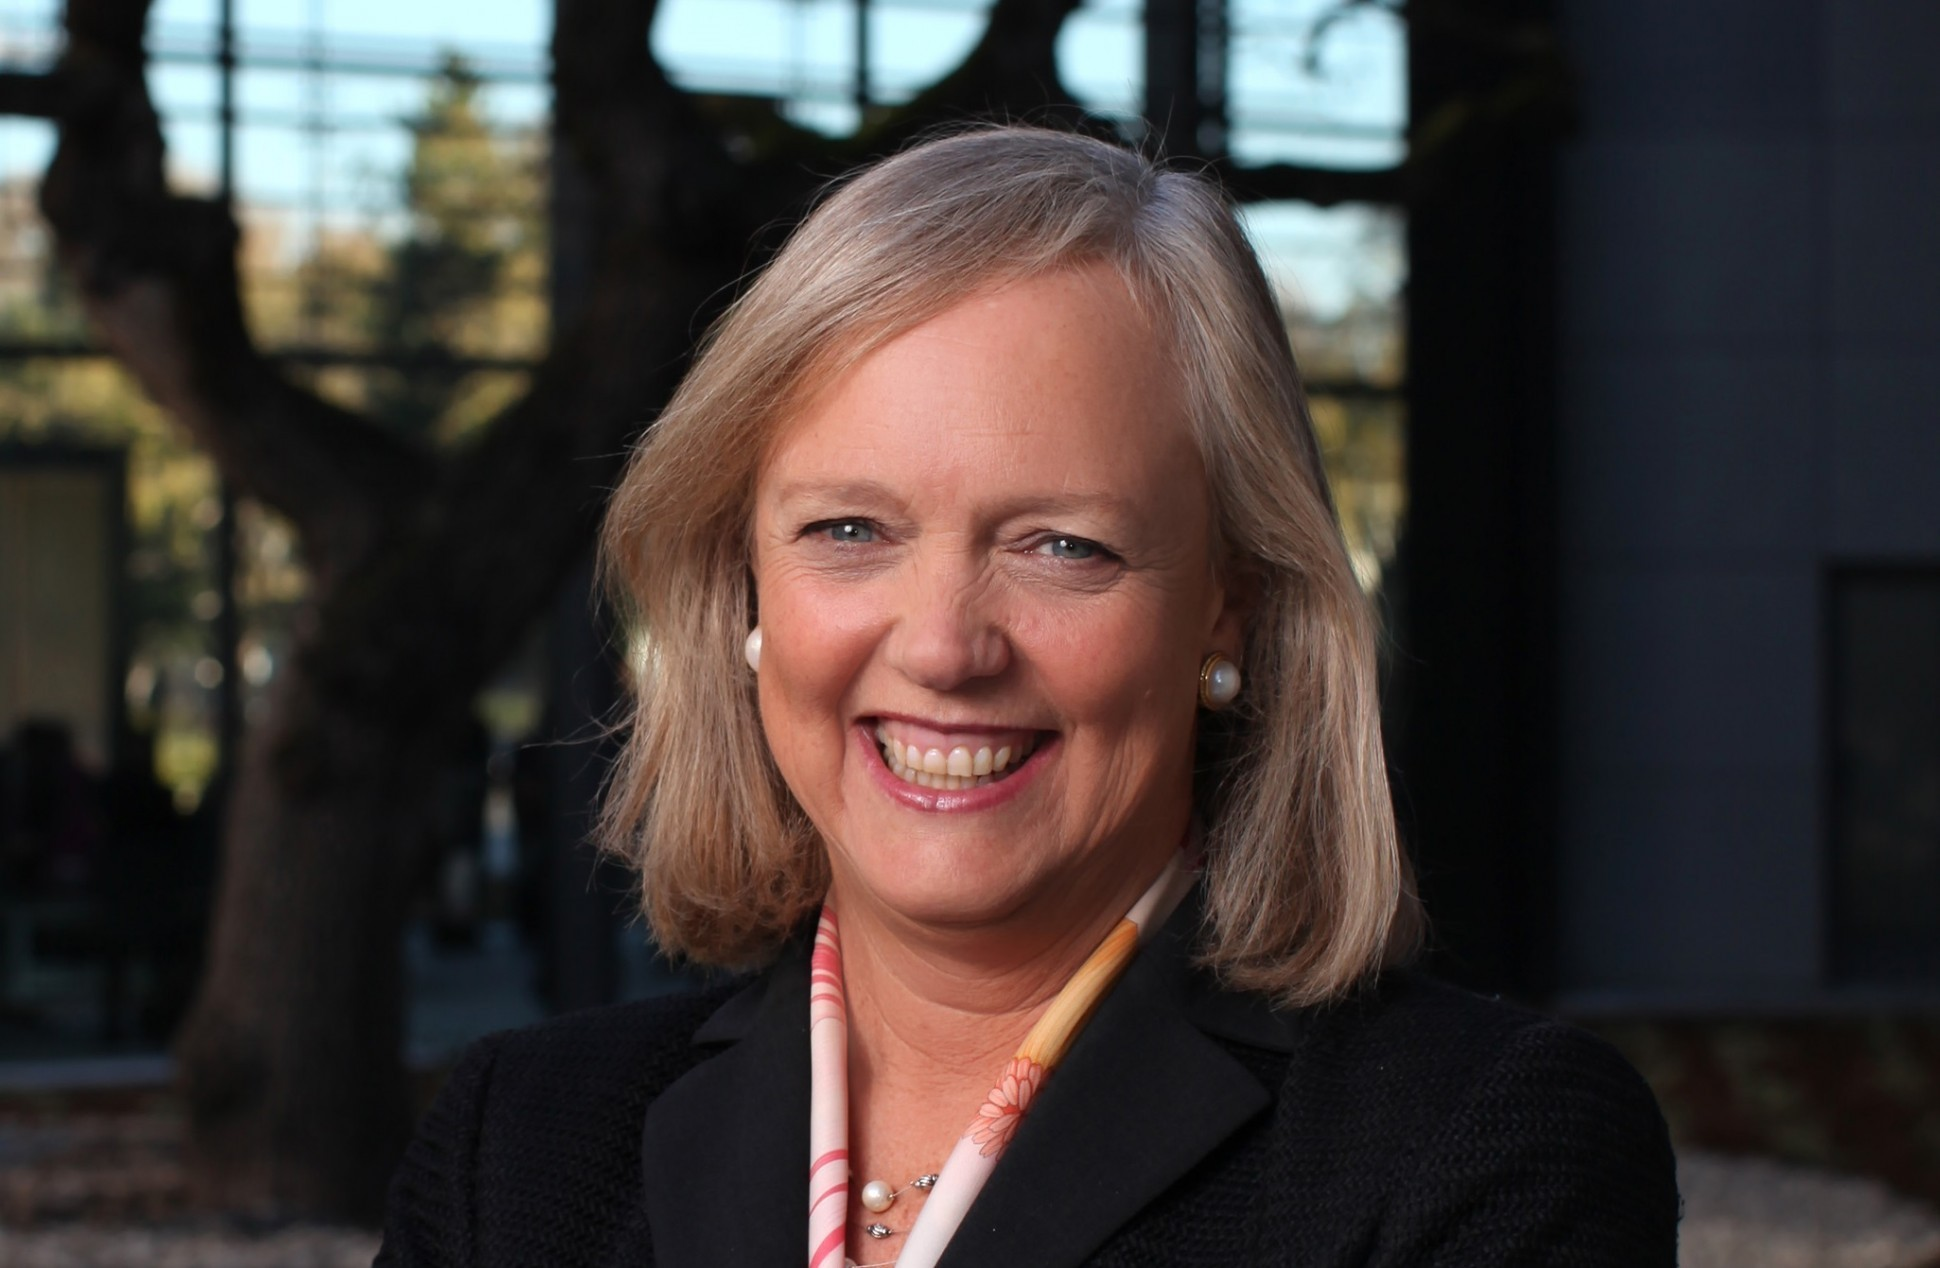 Meg Whitman - CEO Hewlett-Packard